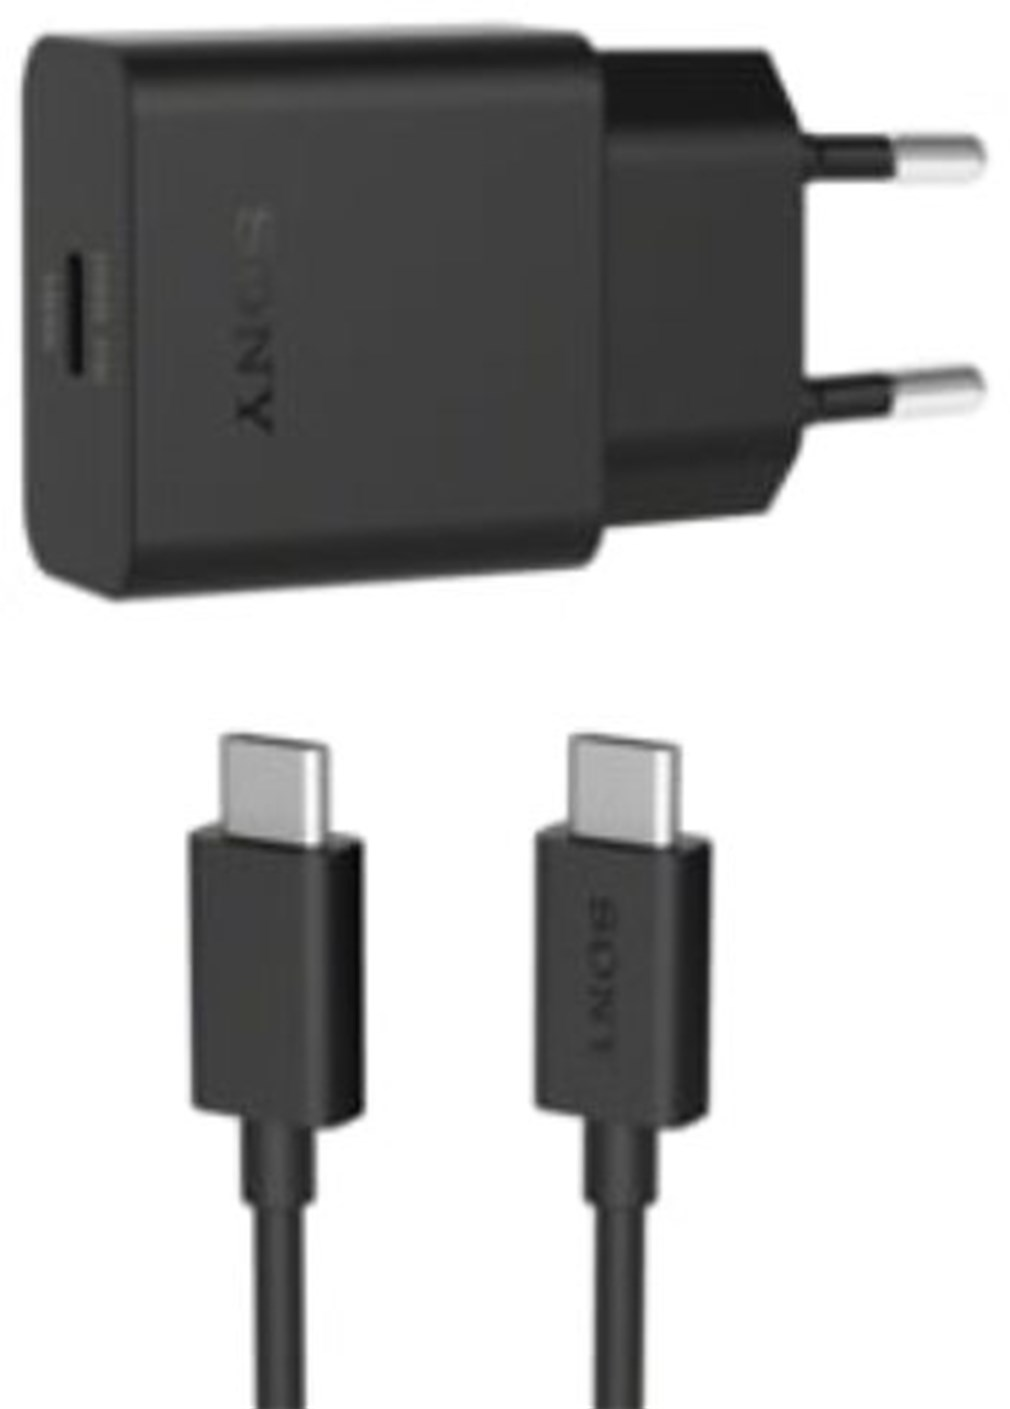 SONY Sony Quick Charger Usb-C UCH32c Black